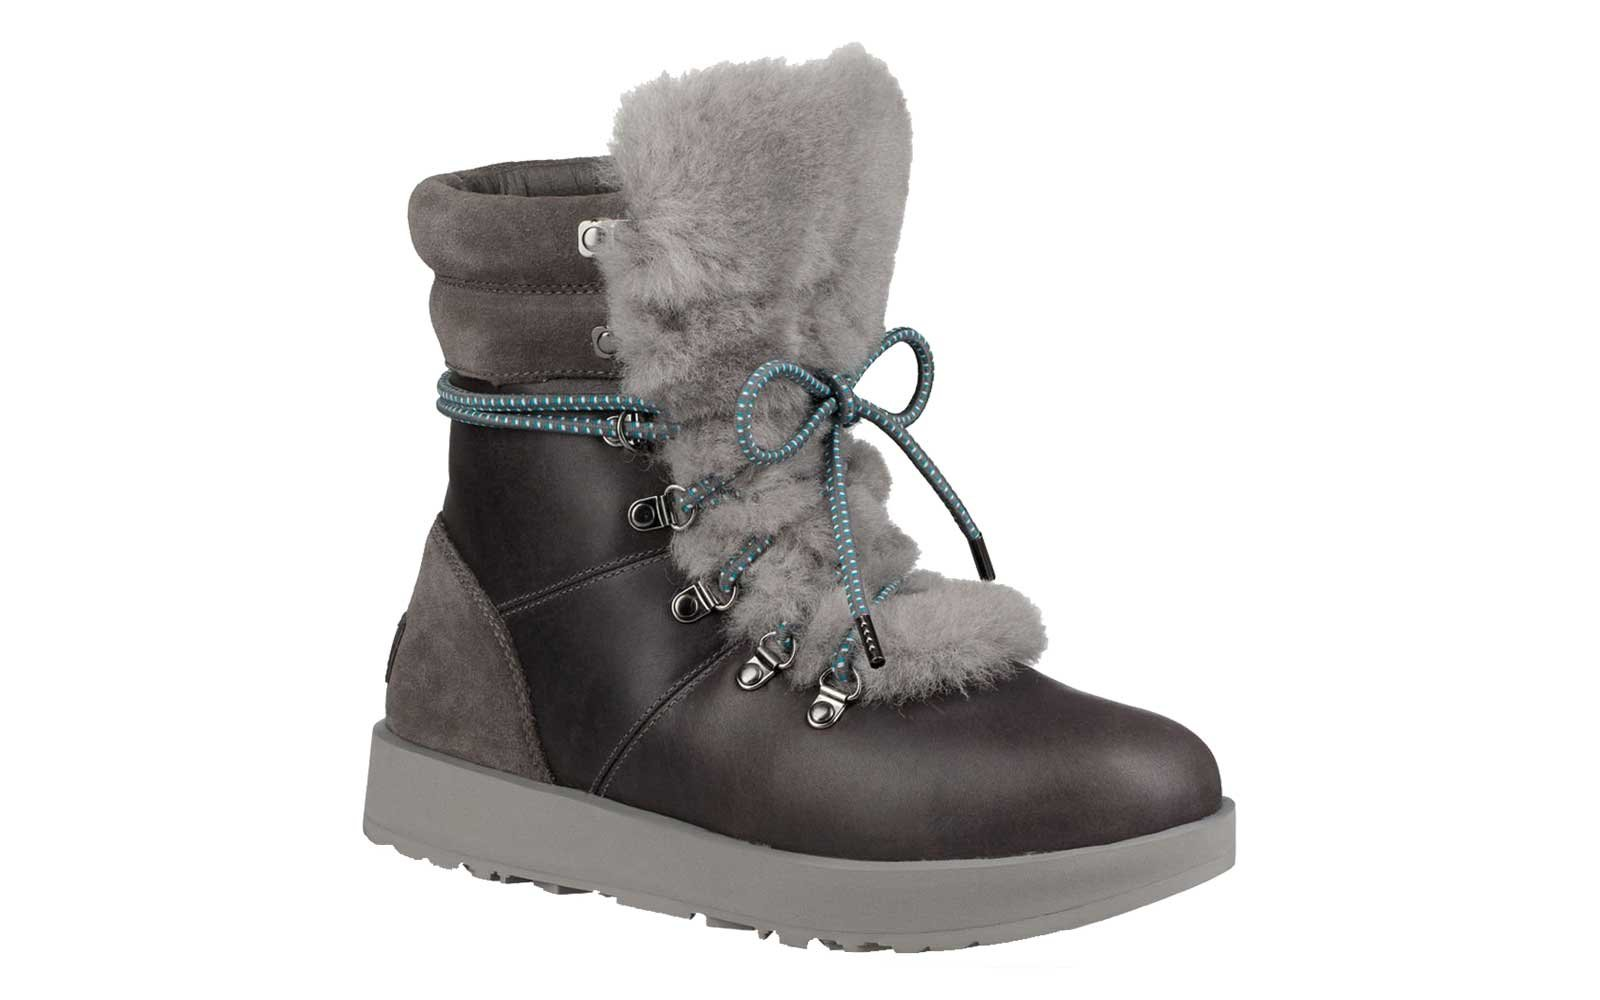 Waterproof ski boots by Ugg